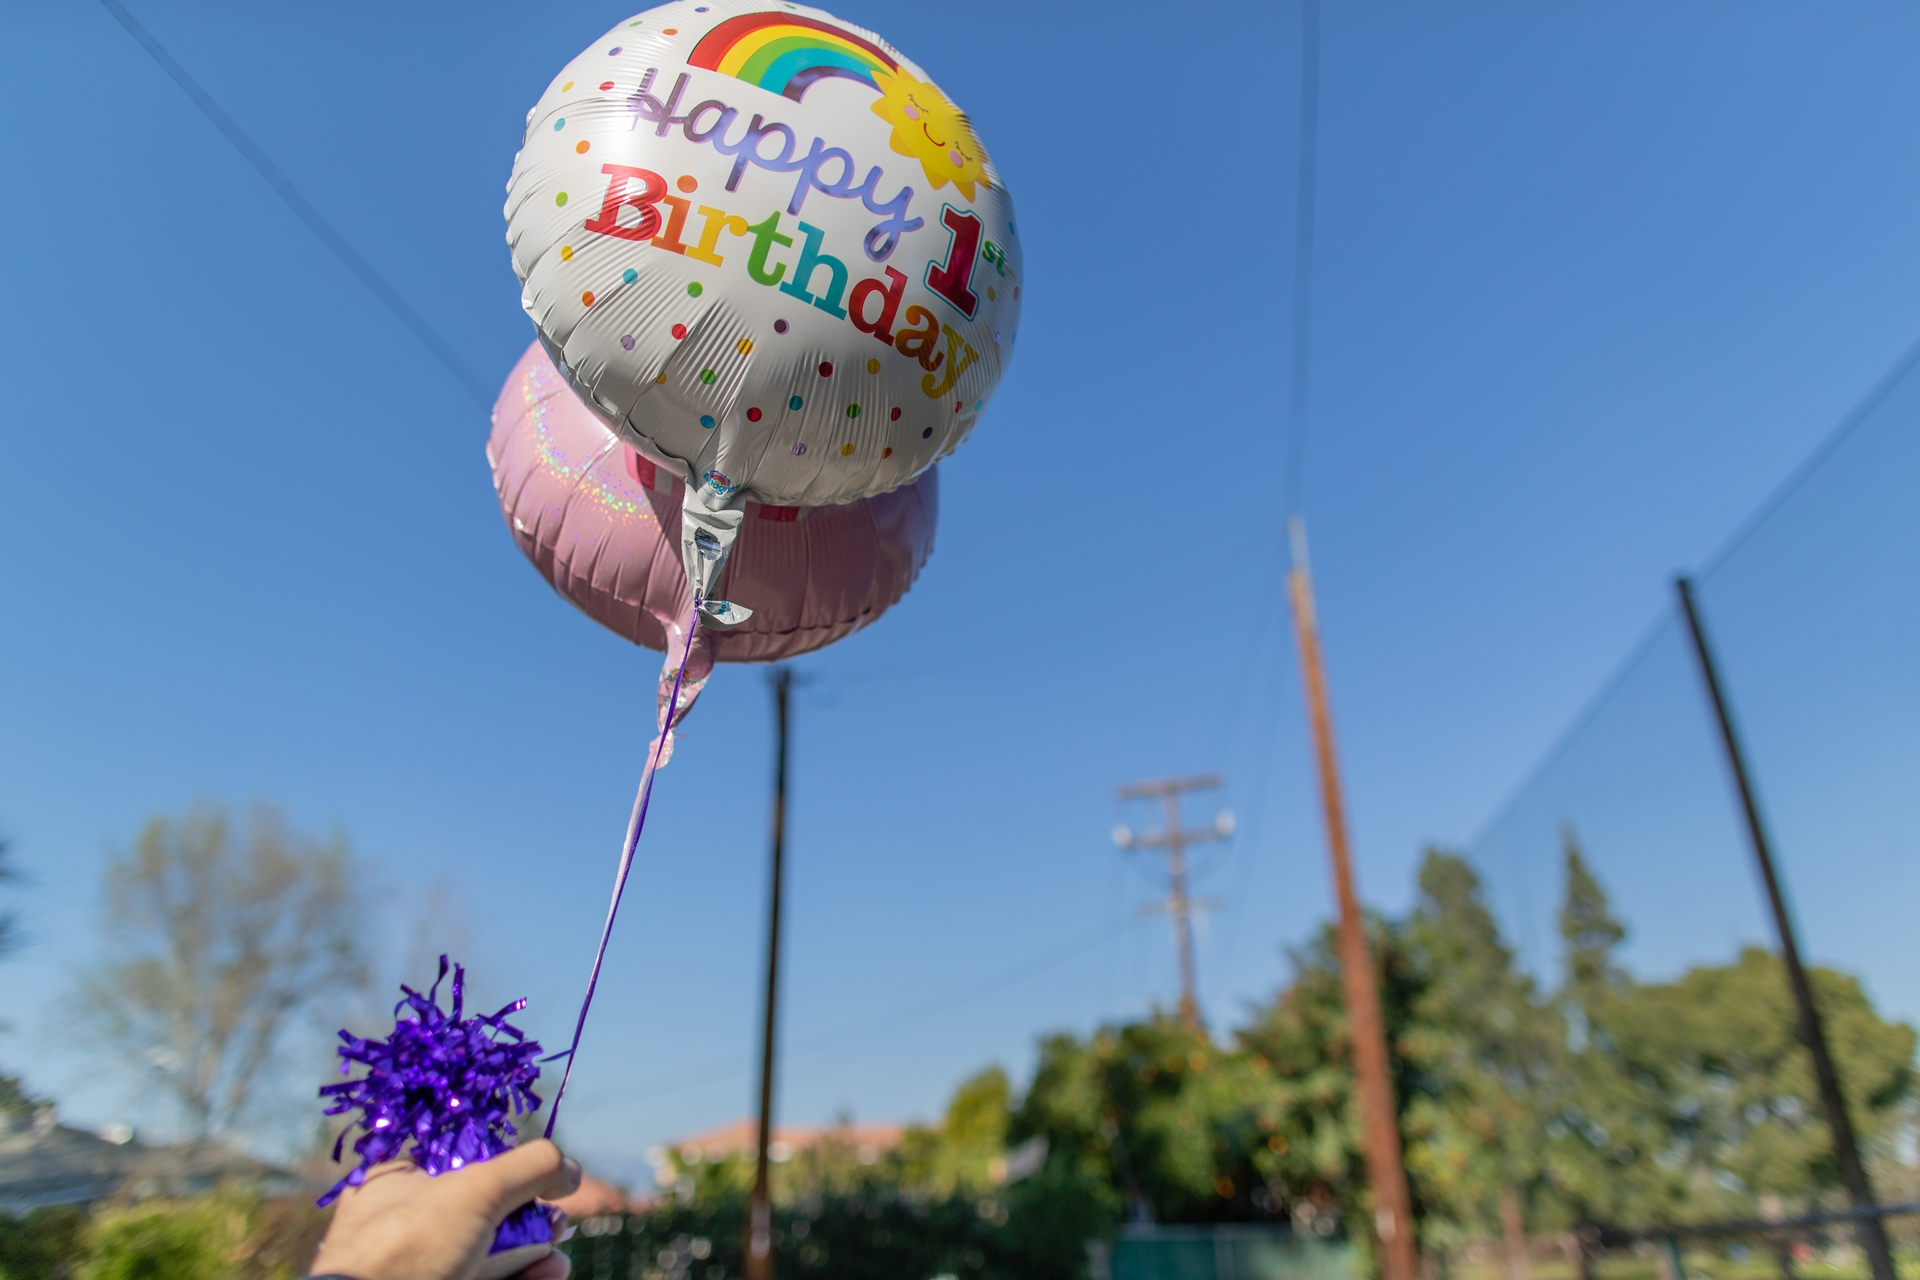 To prevent their release, metallic balloons should always be tied to a weight as required by a 1990 California law.